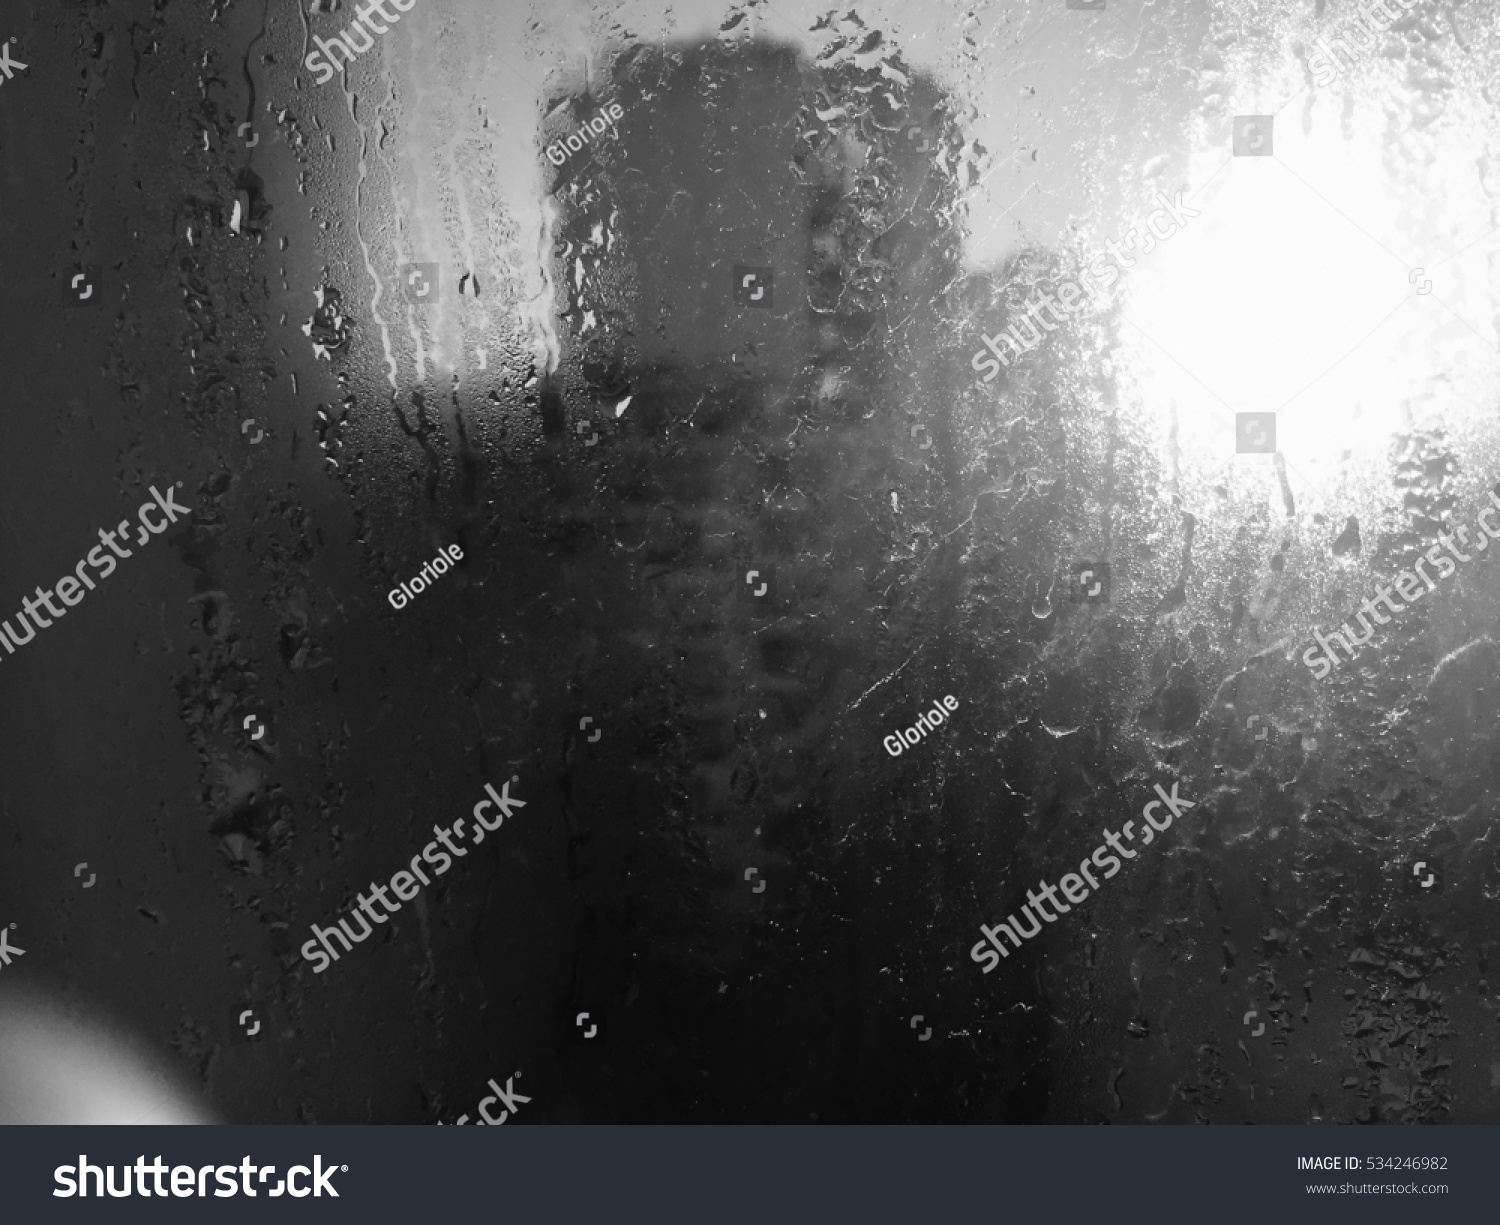 Raindrops on silver glass surface. Natural Pattern of rain drops on wet window monochrome #534246982